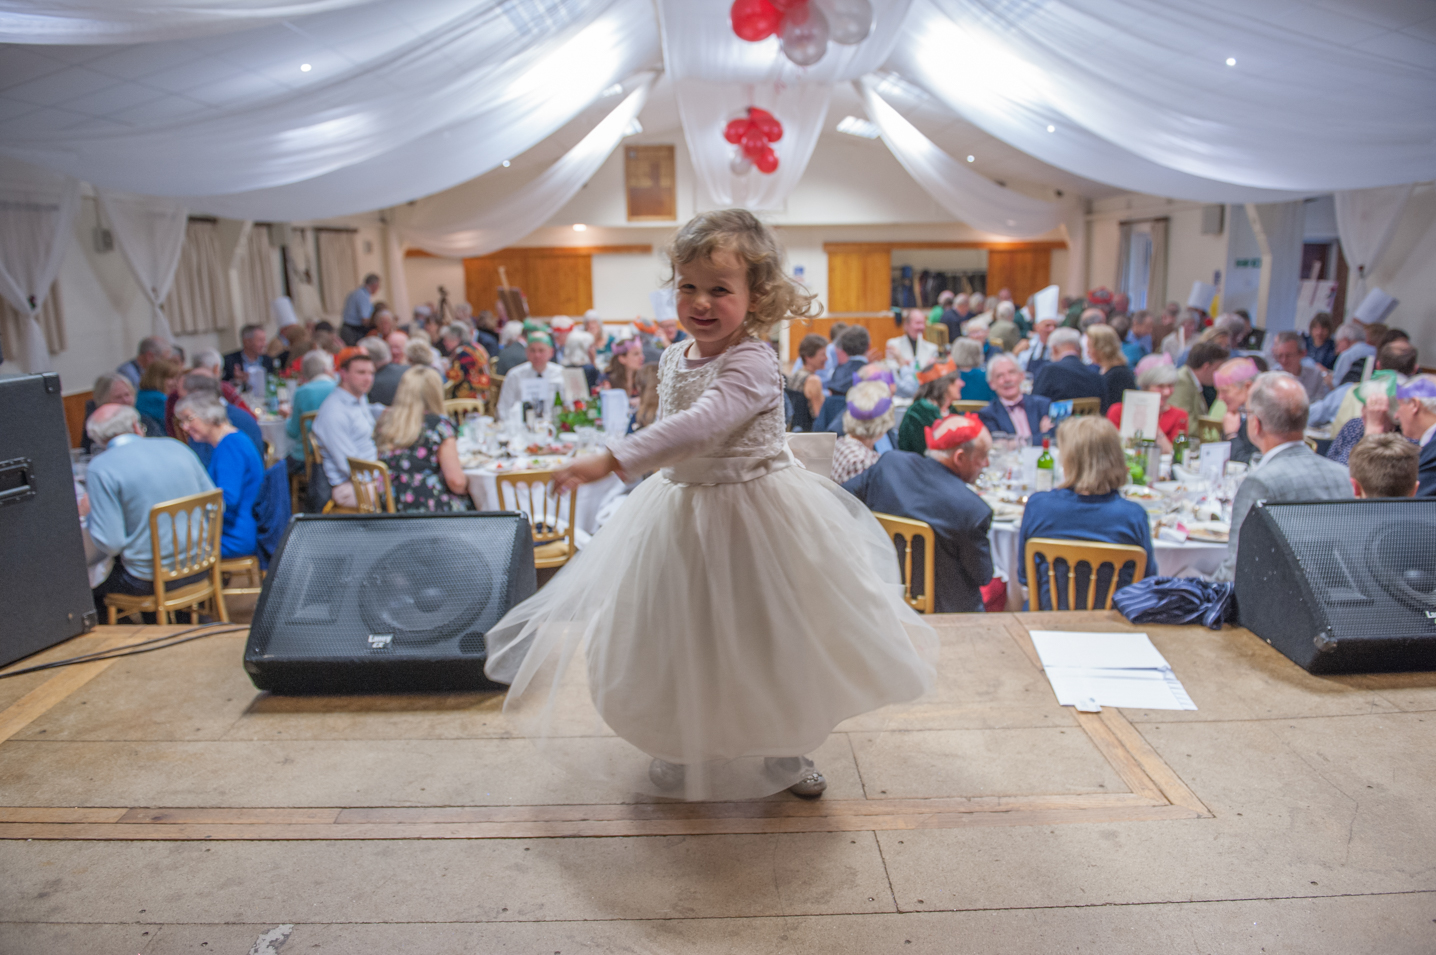 The dancing girl. Corporate event photography by Farnham, Surrey based photographer James Muller